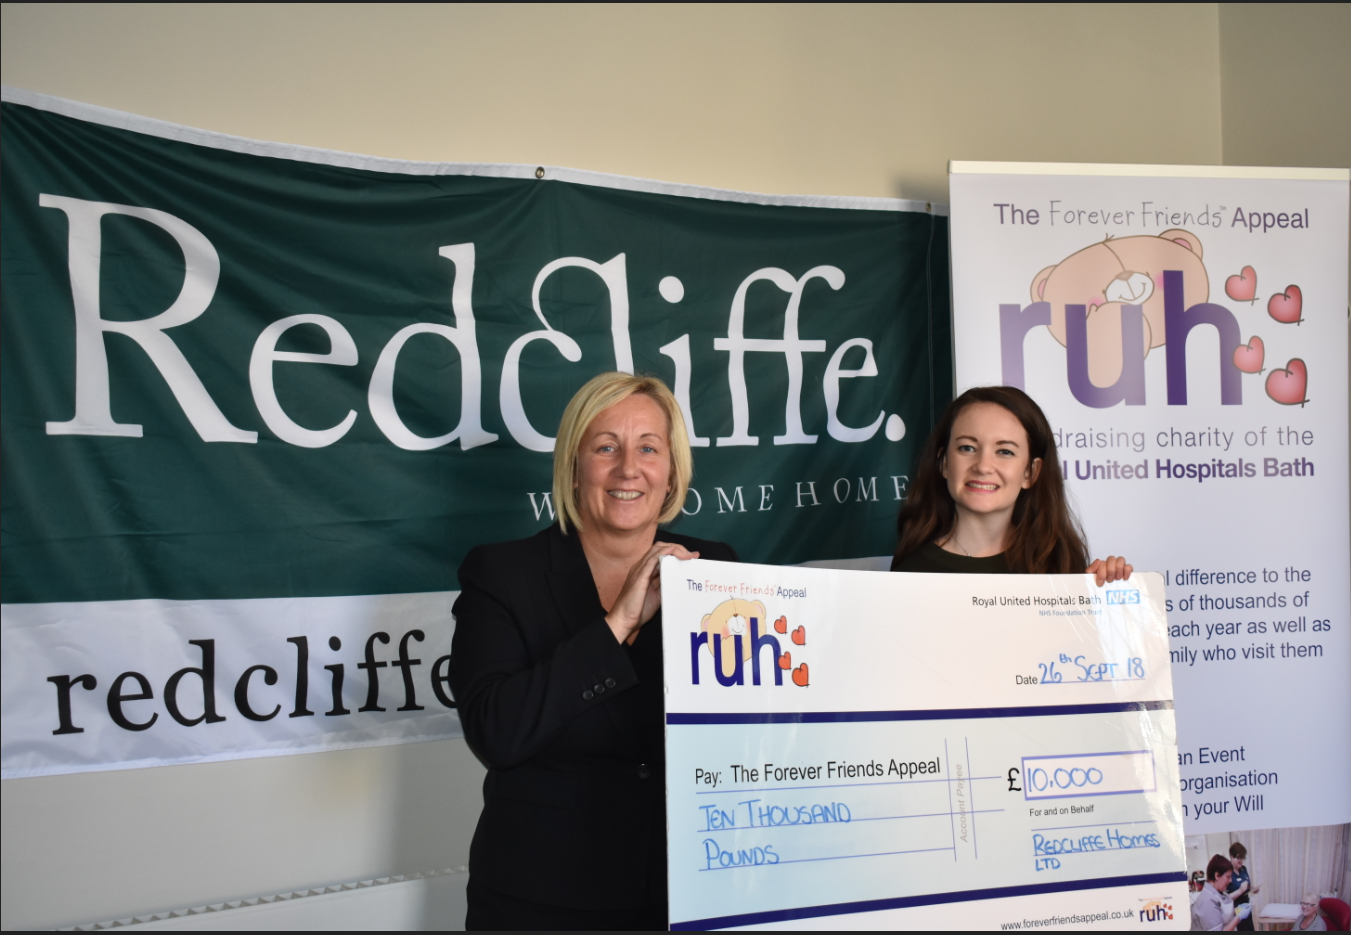 Redcliffe Homes donate to Special Appeals